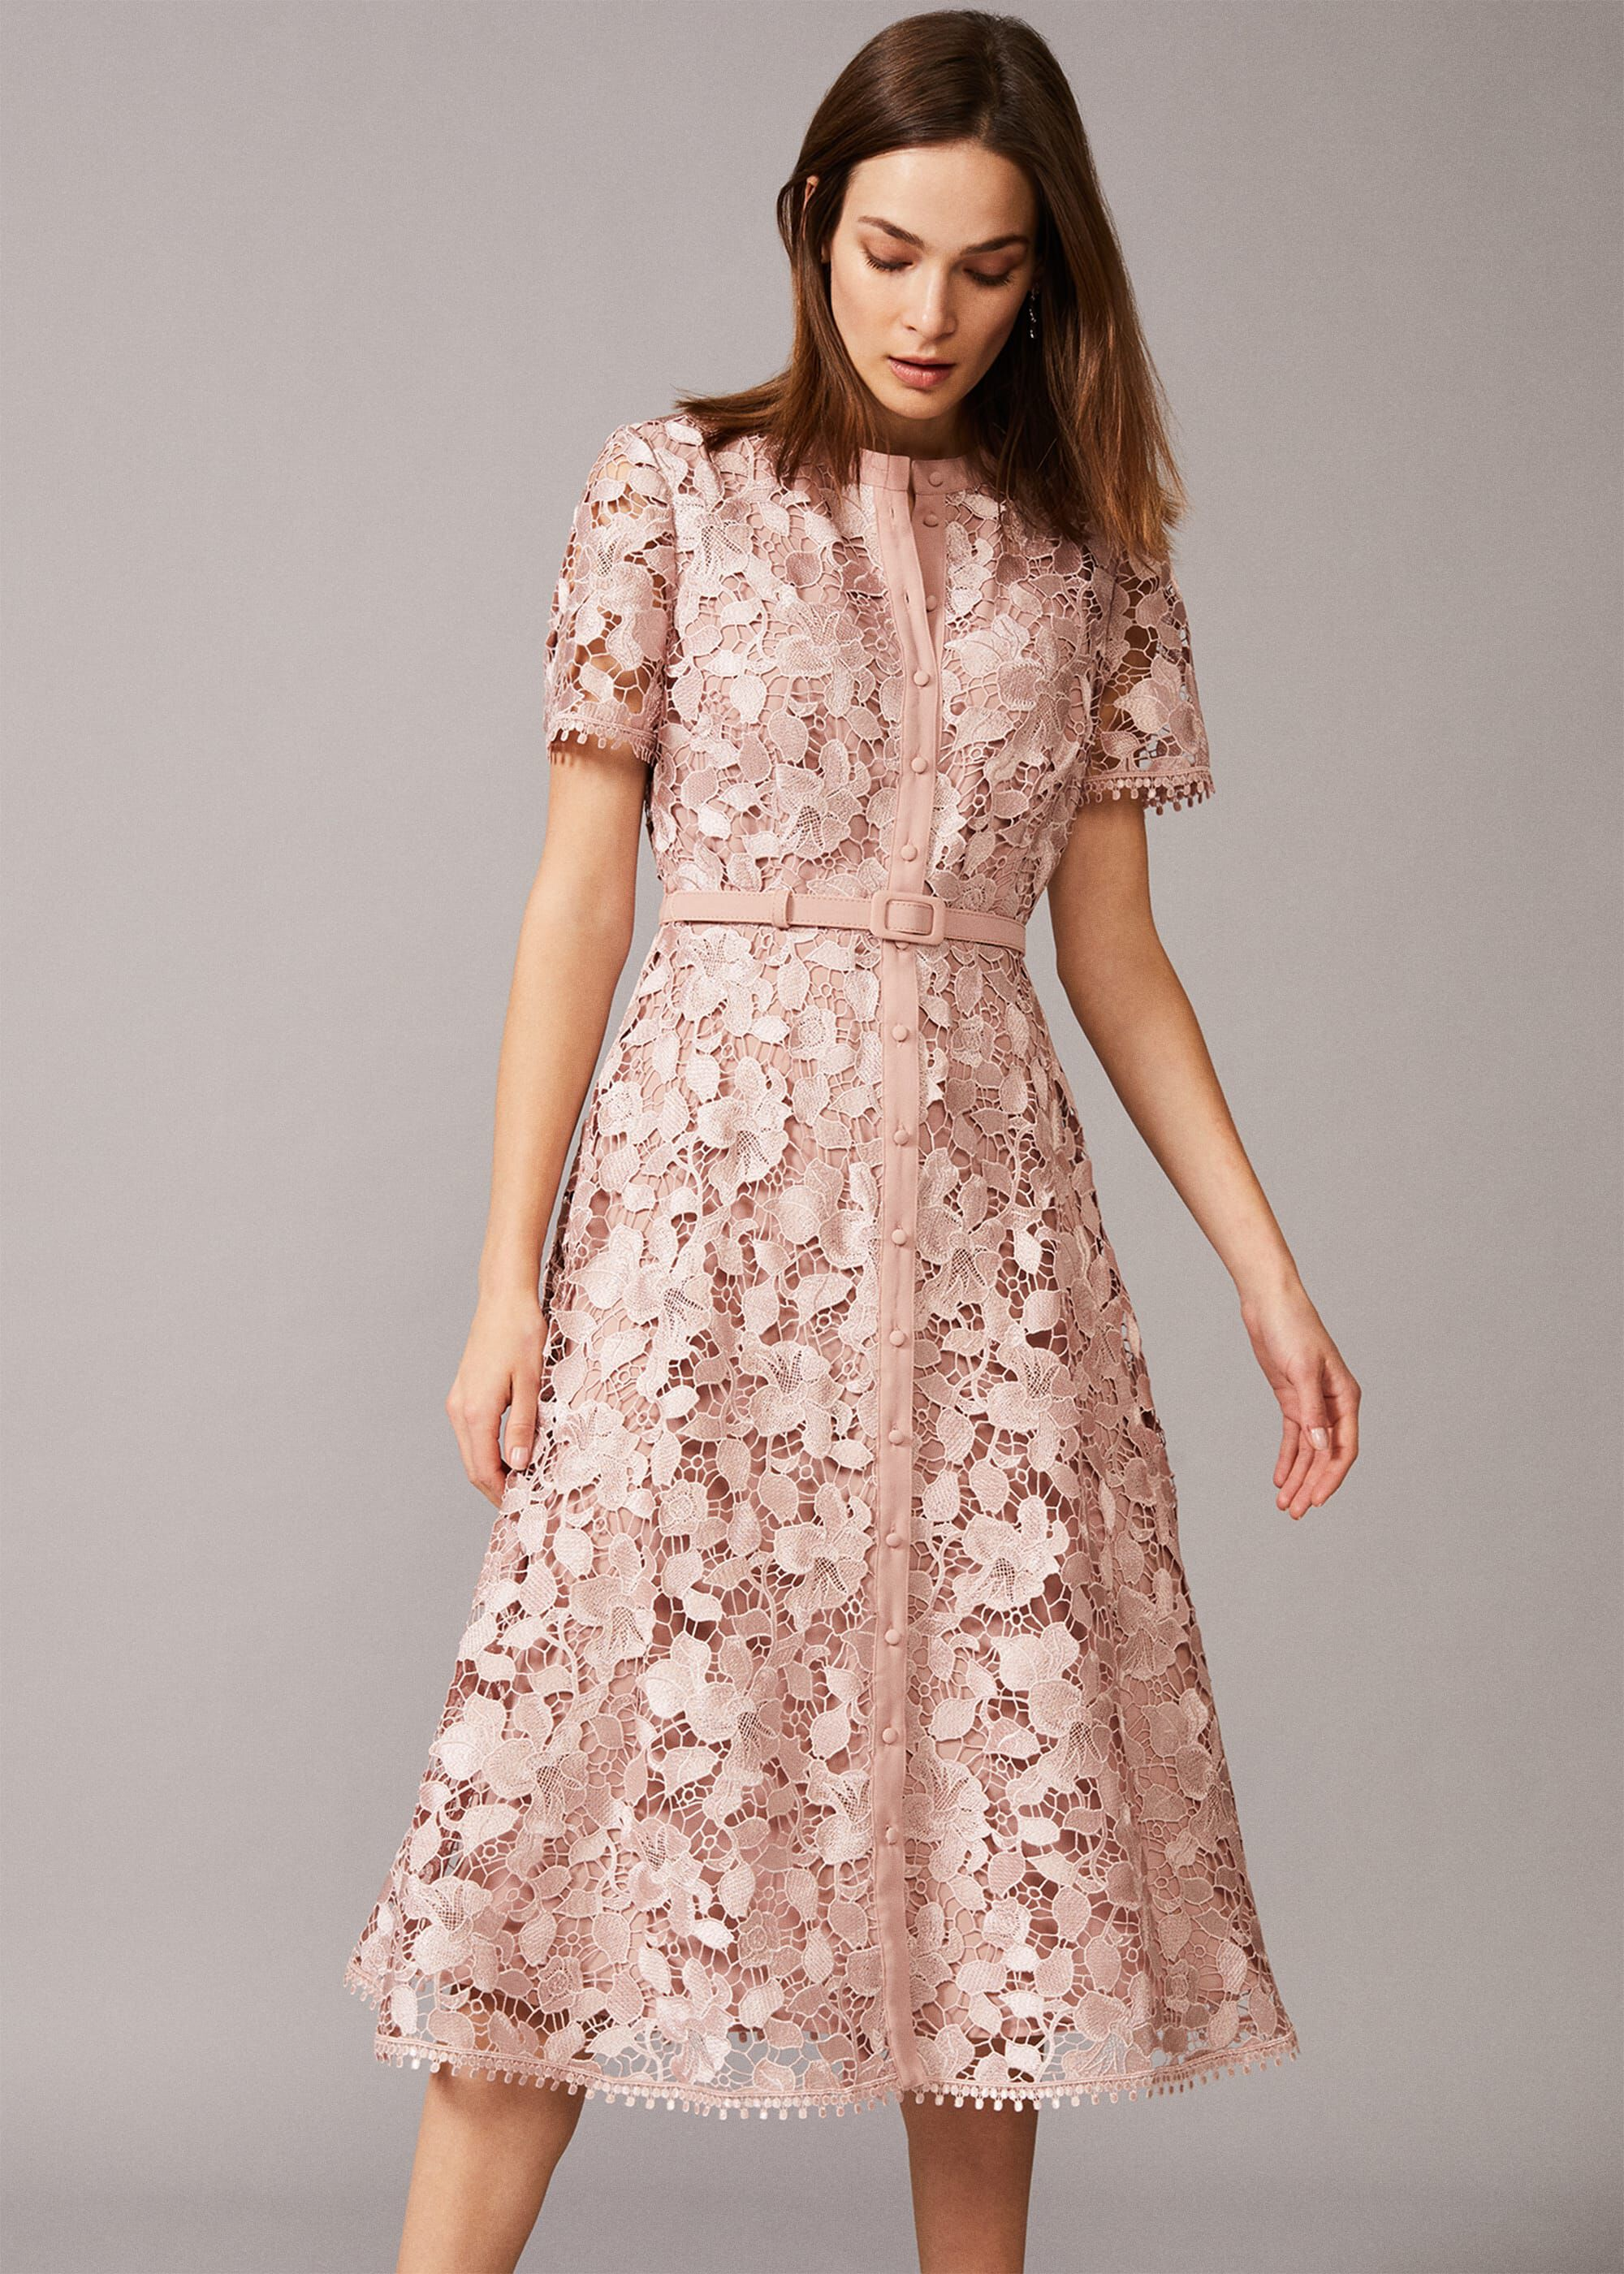 Phase Eight Samana Lace Shirt Dress, Pink, Shirt, Occasion Dress